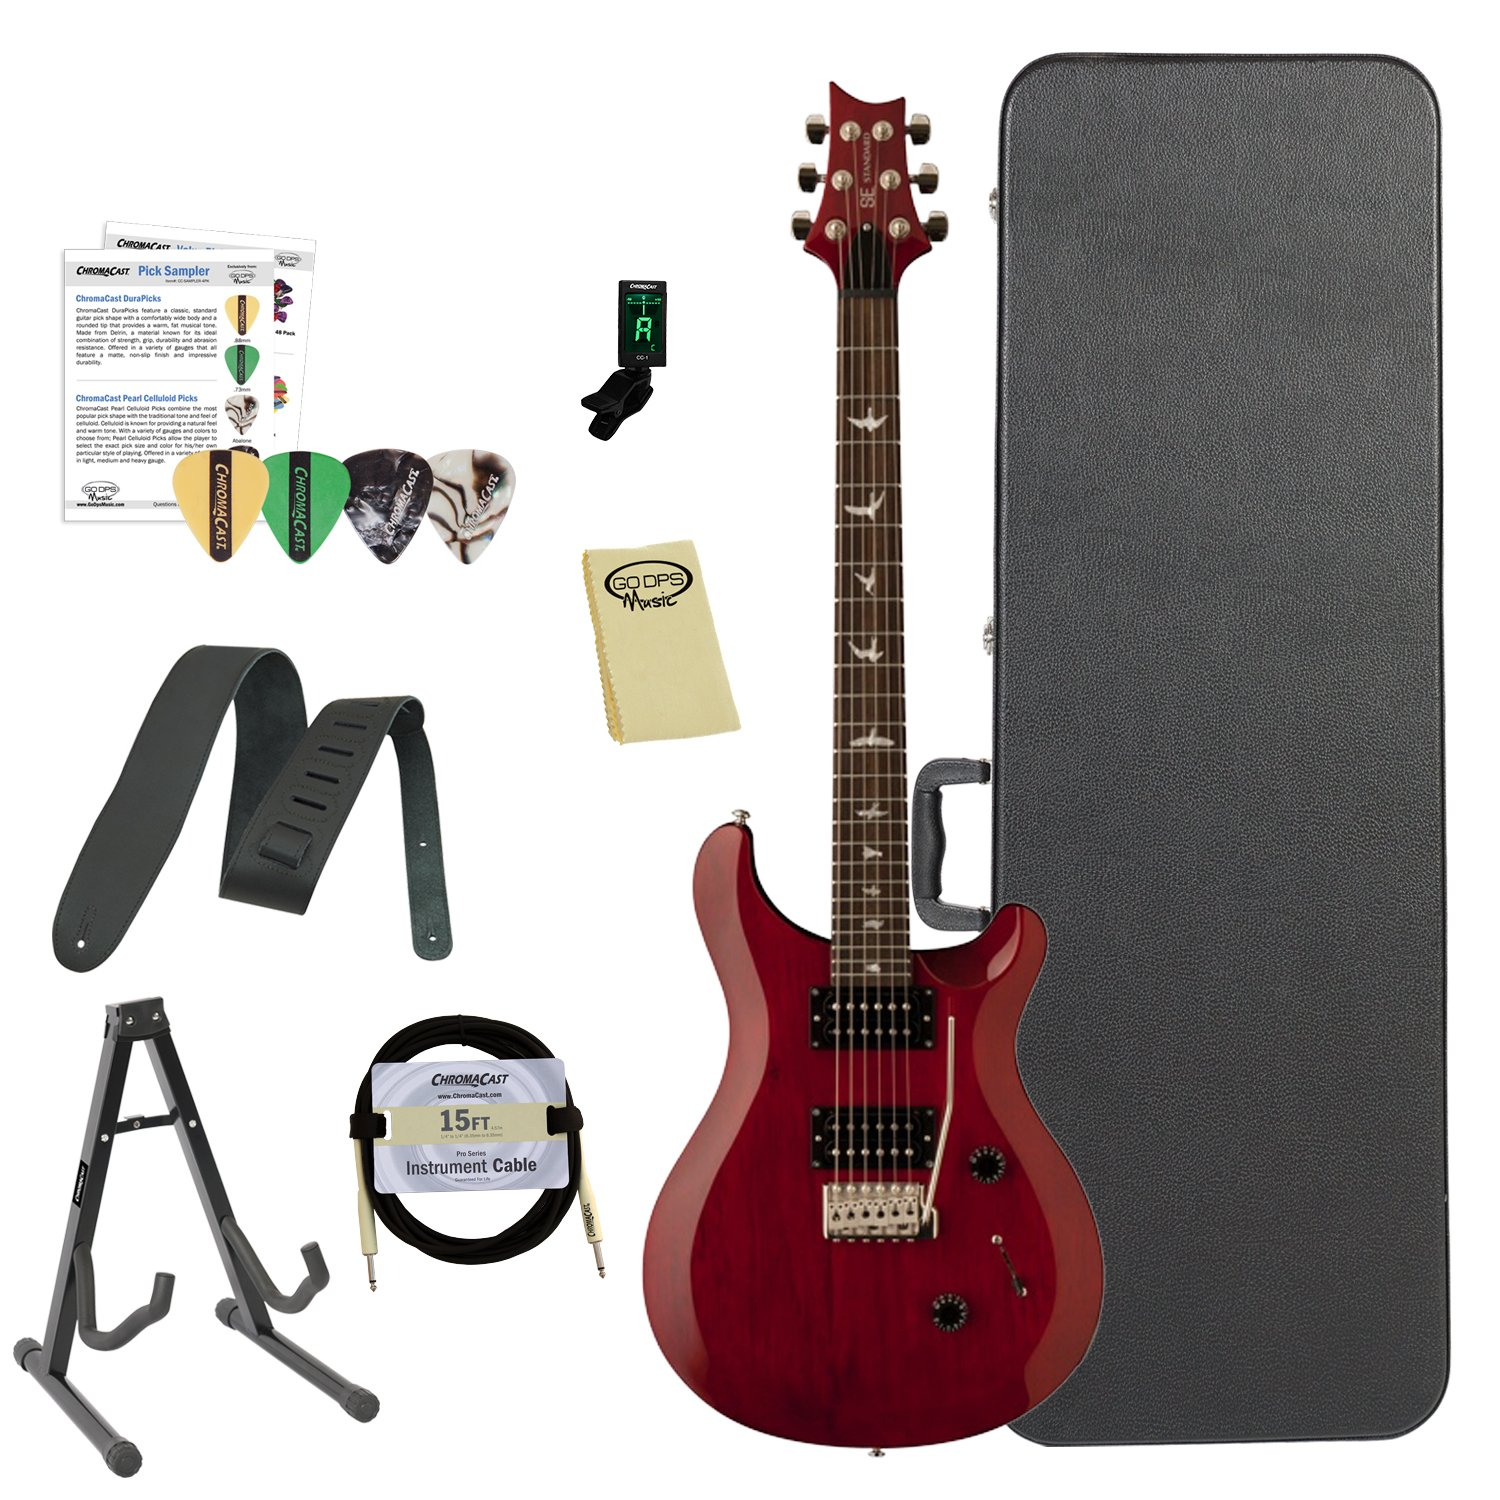 Amazon Paul Reed Smith Guitars ST24VC Kit02 PRS SE Standard 24 Vintage Cherry Electric Guitar with ChromaCast Hard Case & Accessories Musical